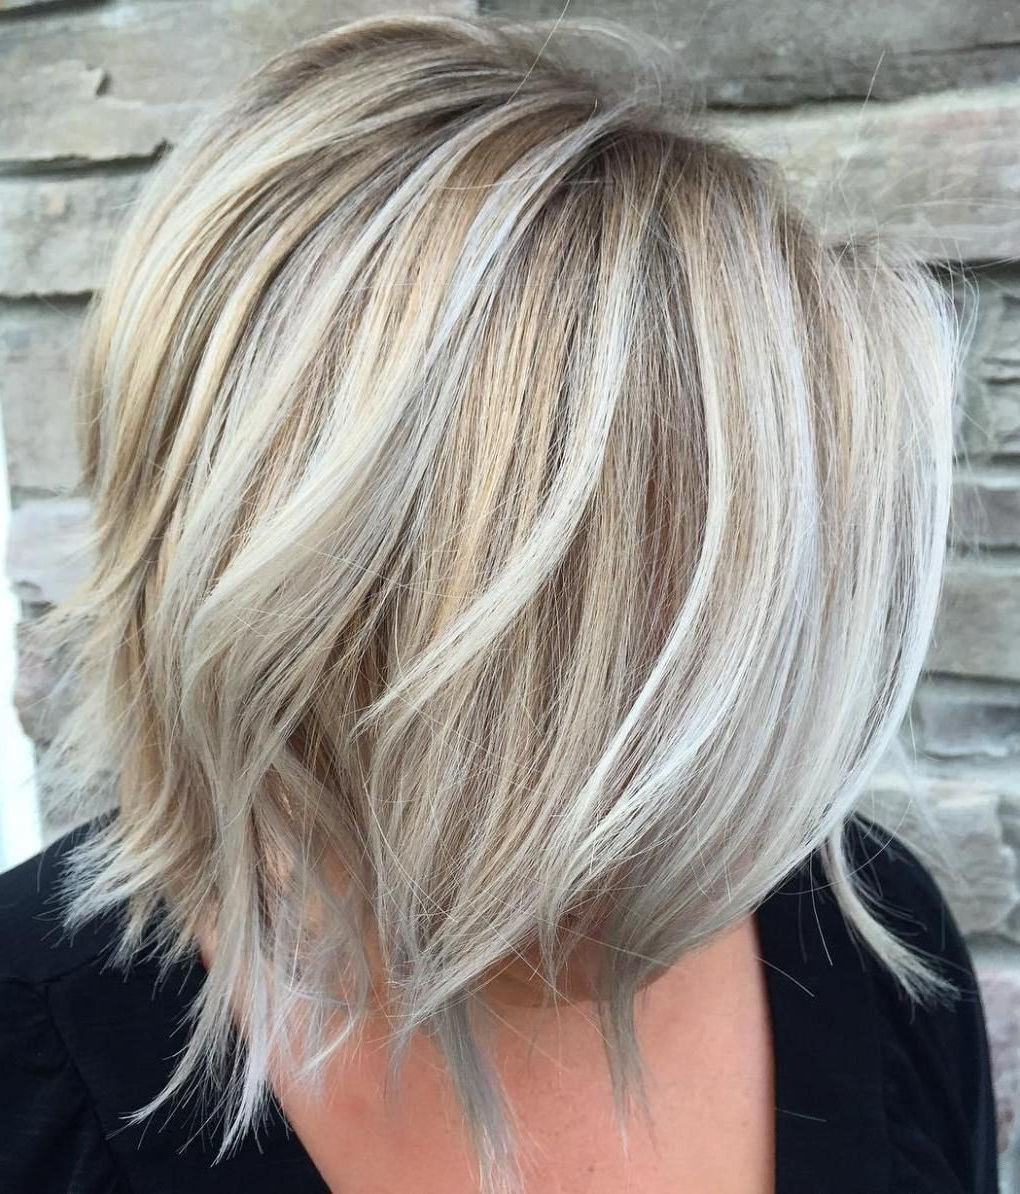 Layered Blonde Balayage Bob | Make Up Tips | Pinterest | Blonde In Layered Balayage Bob Hairstyles (View 17 of 20)